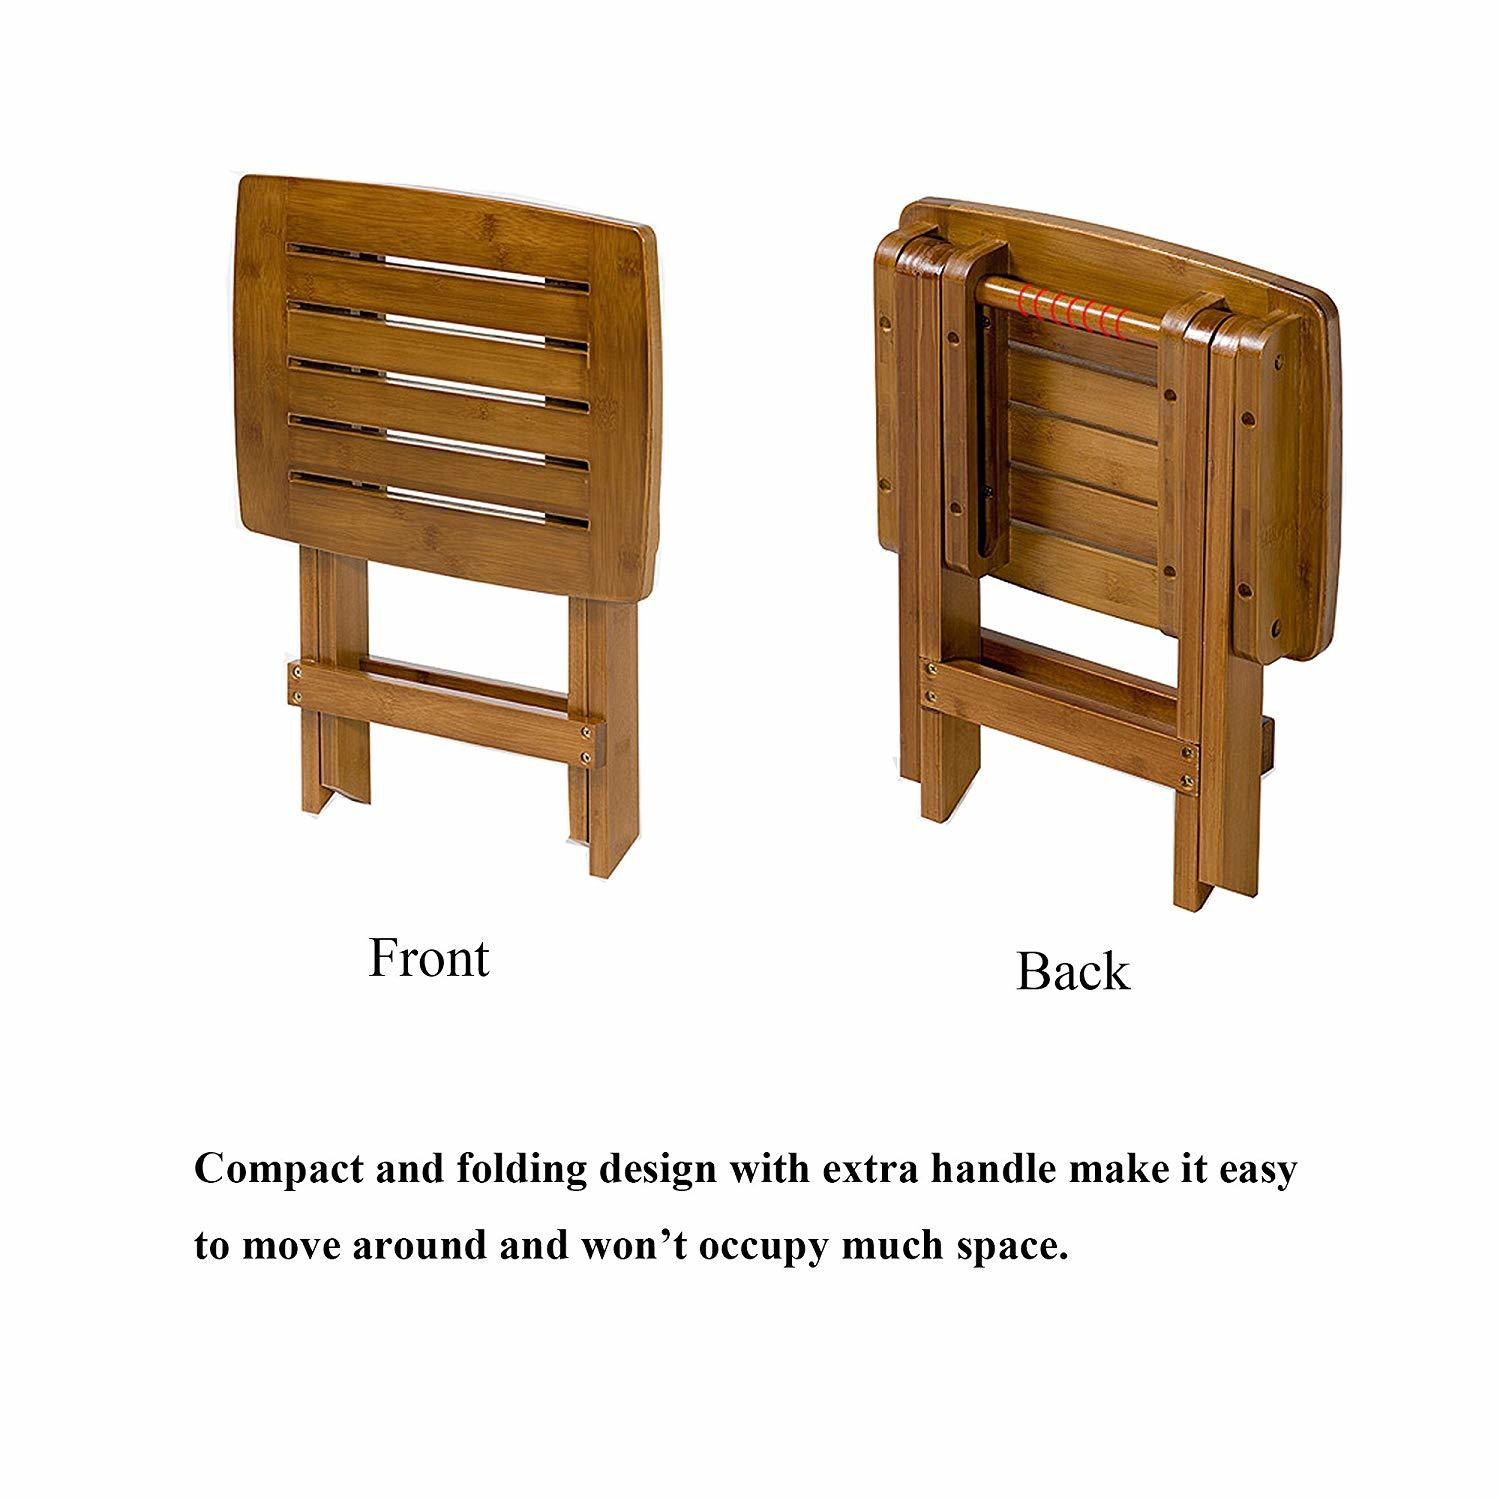 ETECHMART Folding Bamboo Shower Bench 18 and 10 similar items